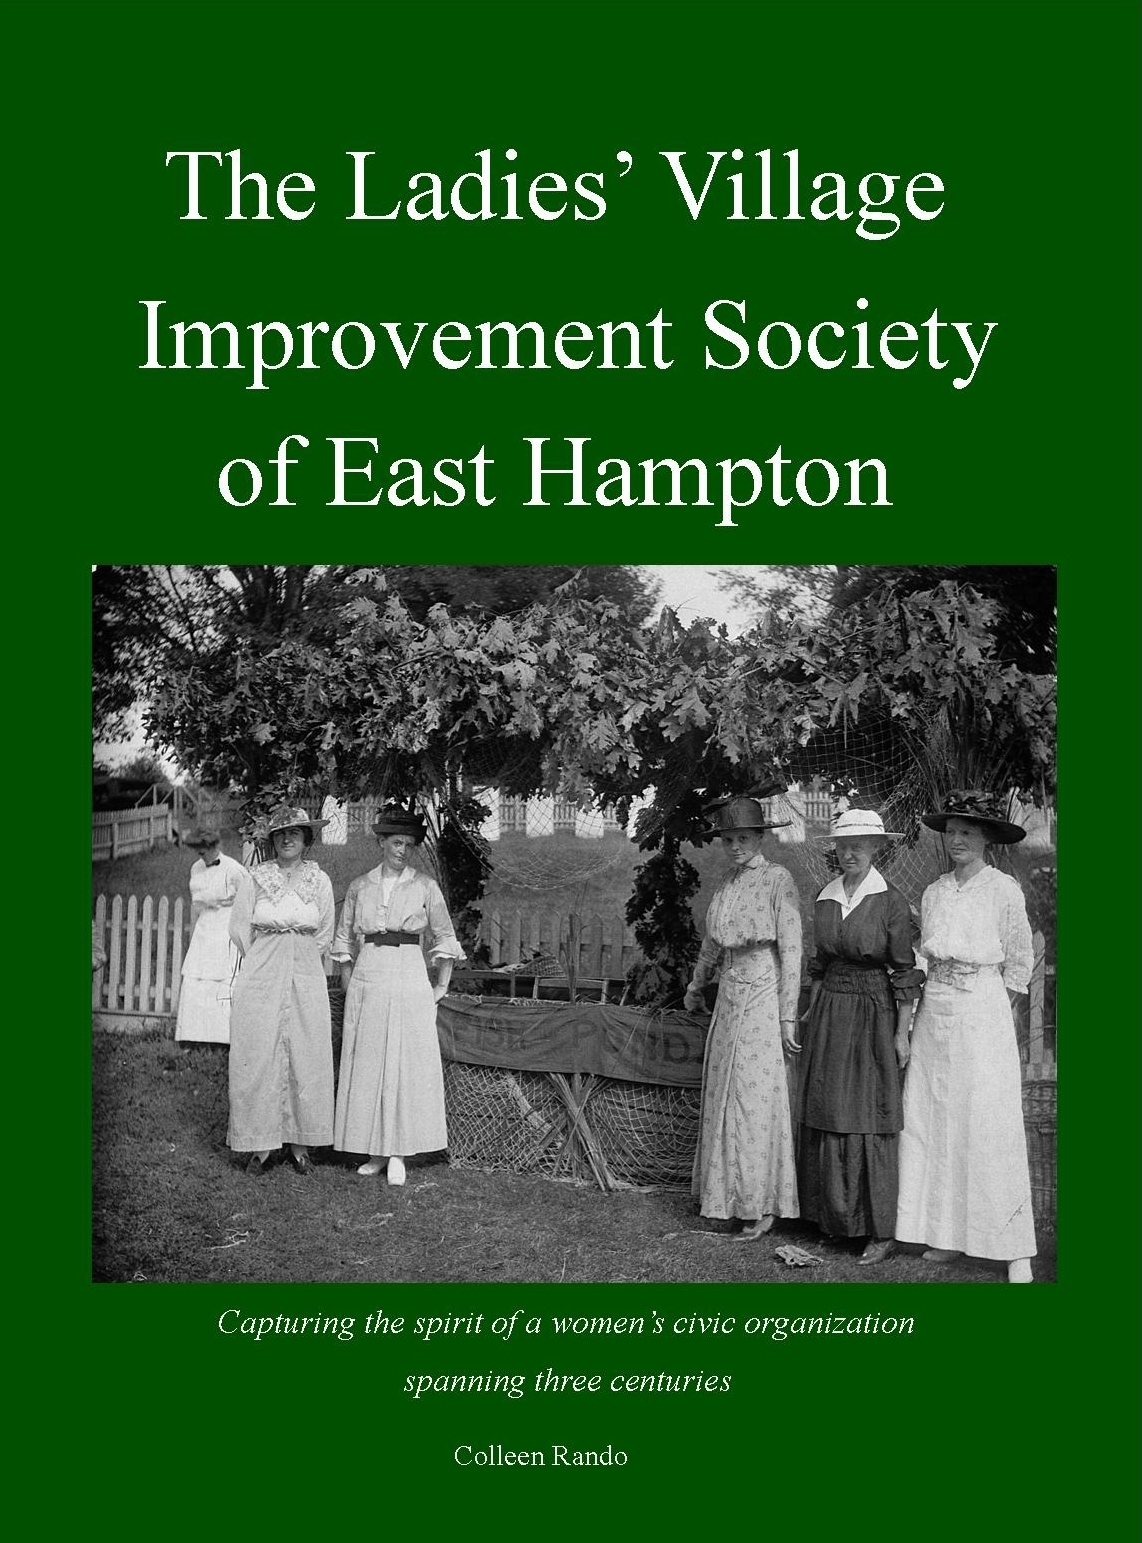 To read more about our history,   The Ladies' Village Improvement Society of East Hampton   is available for purchase in our Books shop for a nominal fee. Illustrated with archival photos, the book brings to life the exciting story of one of the oldest and most esteemed women's organizations in the country.